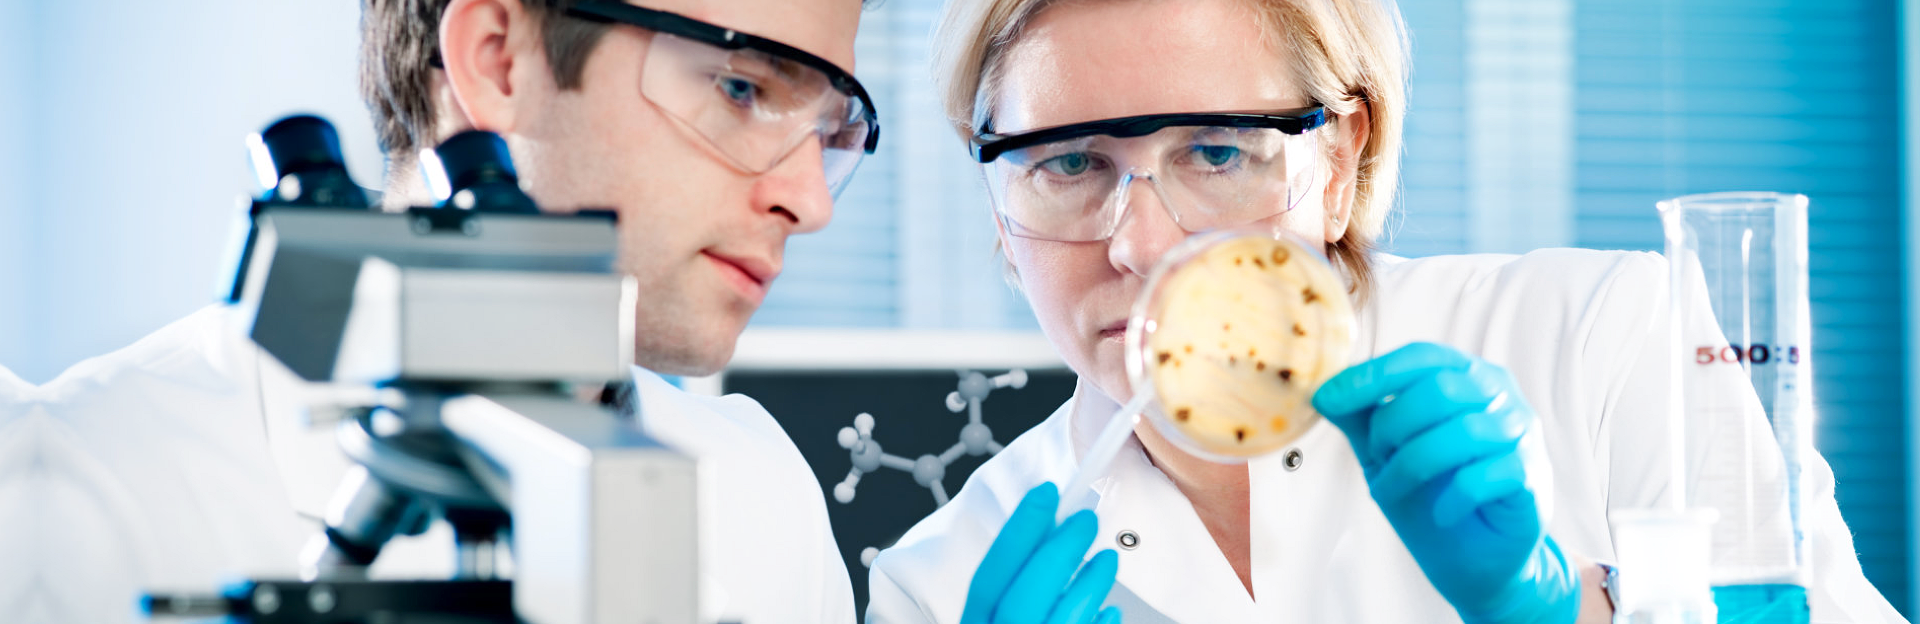 Two scientists looking at the experiment